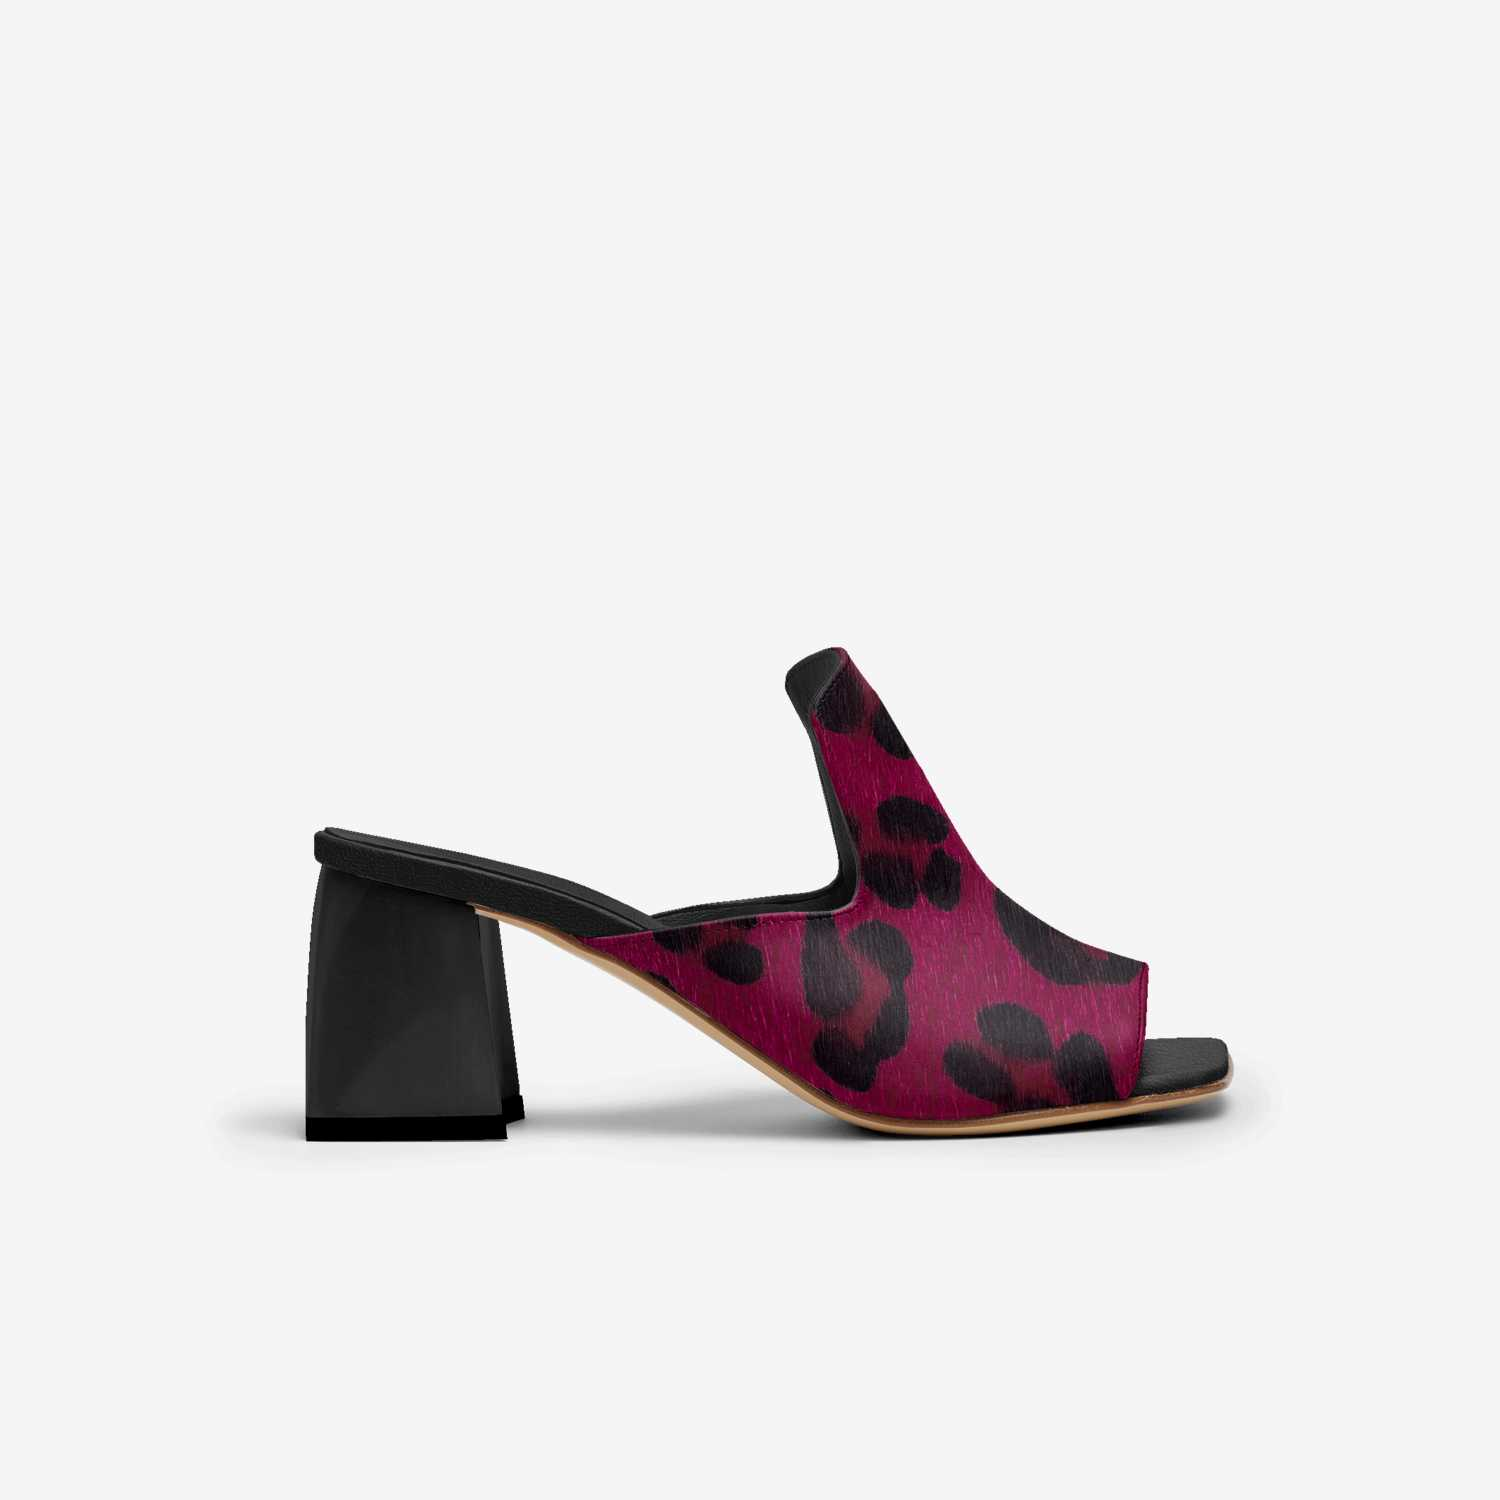 Freda custom made in Italy shoes by Calvina Morris   Side view